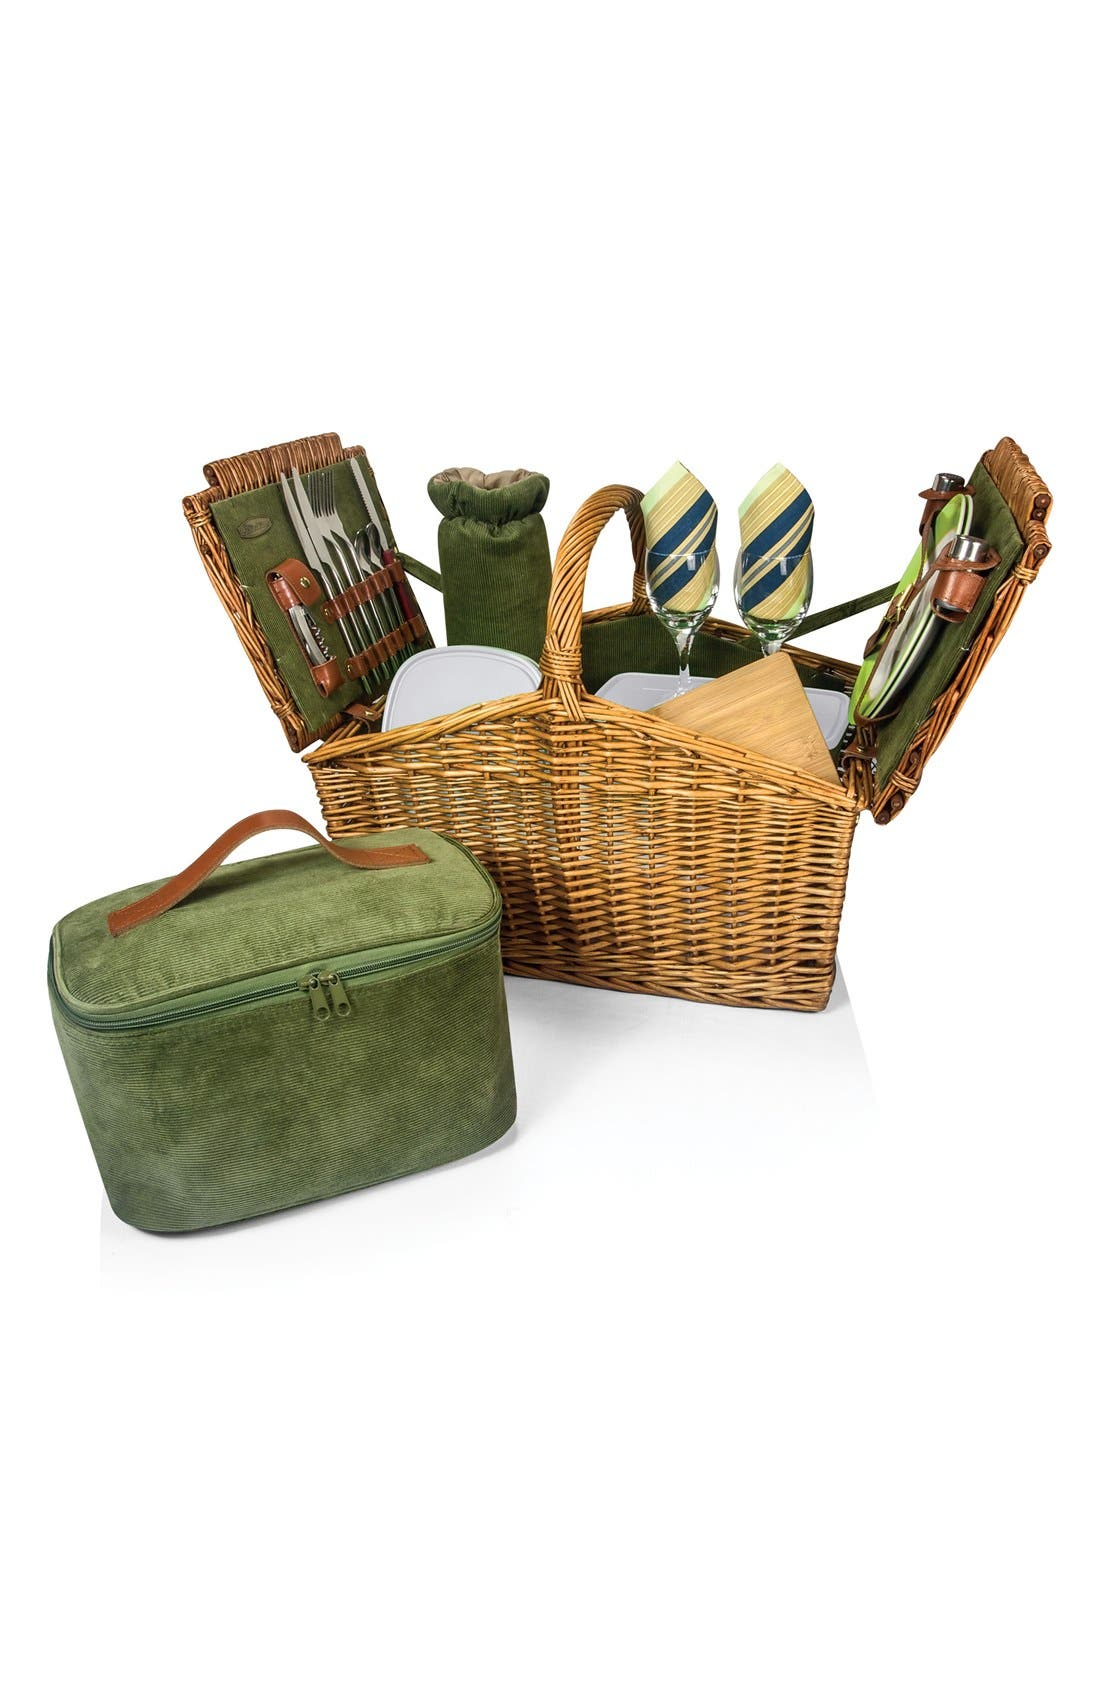 'Somerset' Wicker Picnic Basket,                             Alternate thumbnail 6, color,                             Green